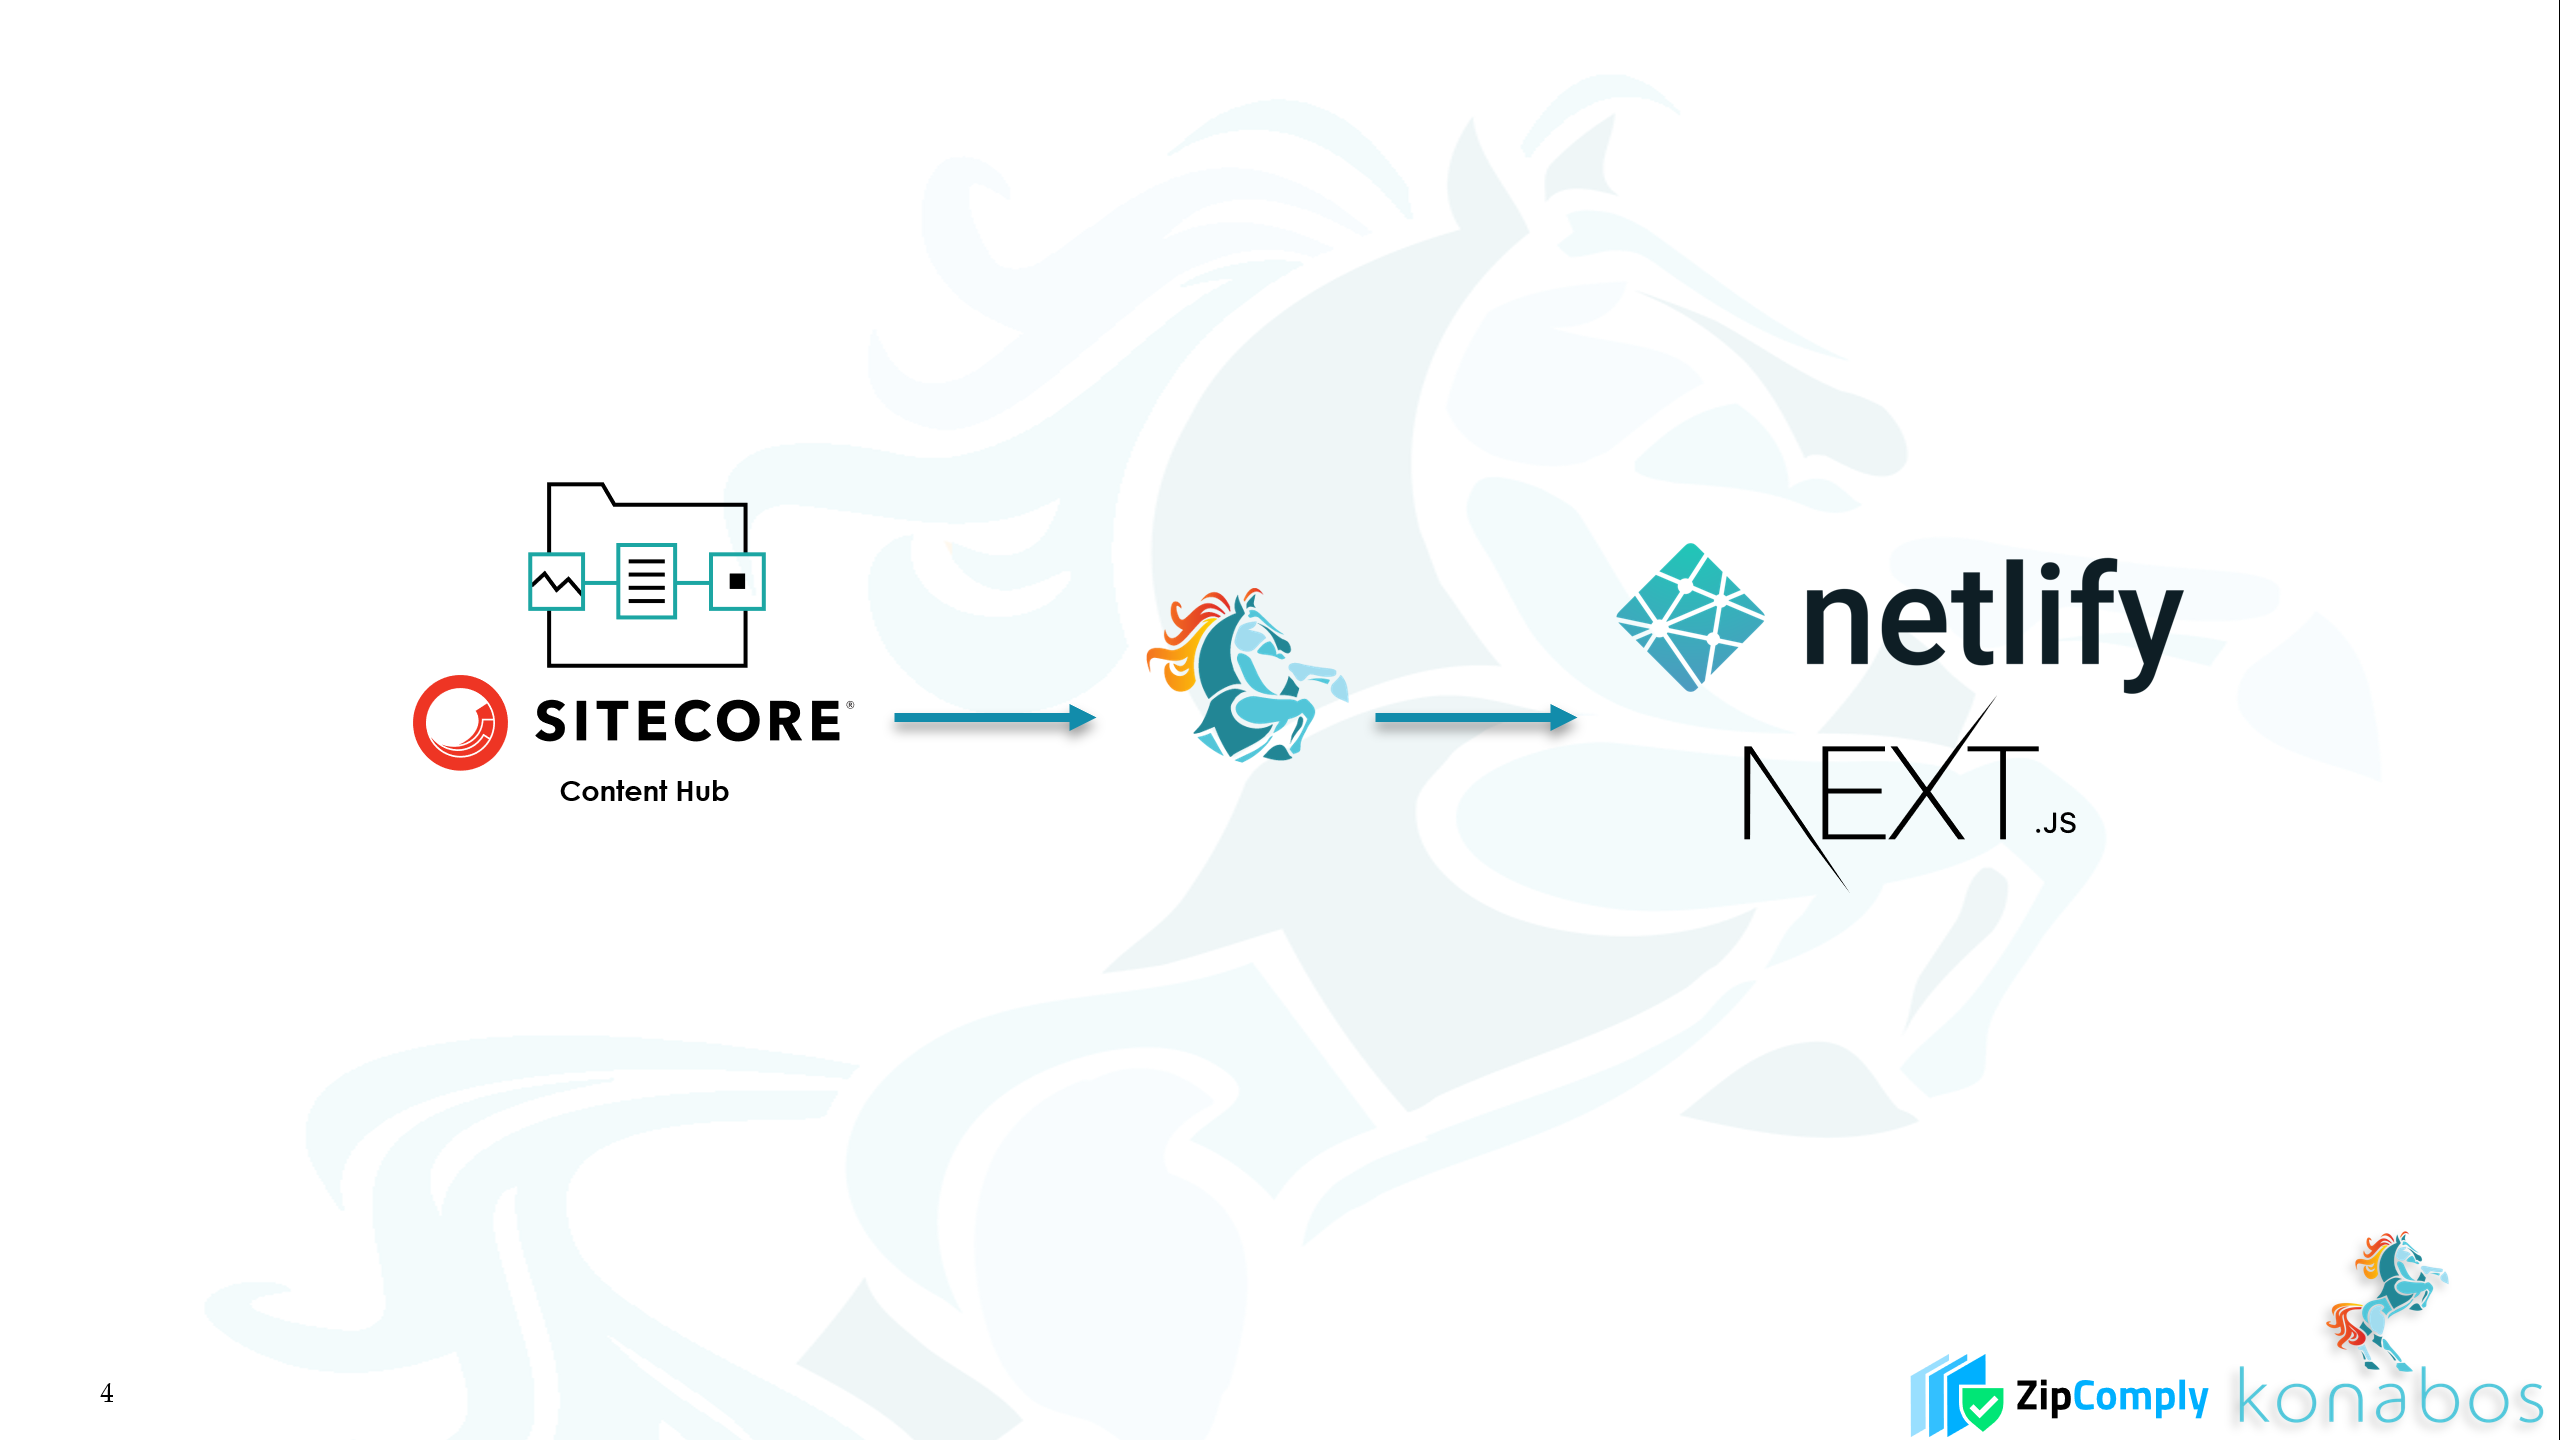 Using Sitecore Content Hub As a Service with Jamstack - Next.js and Netlify